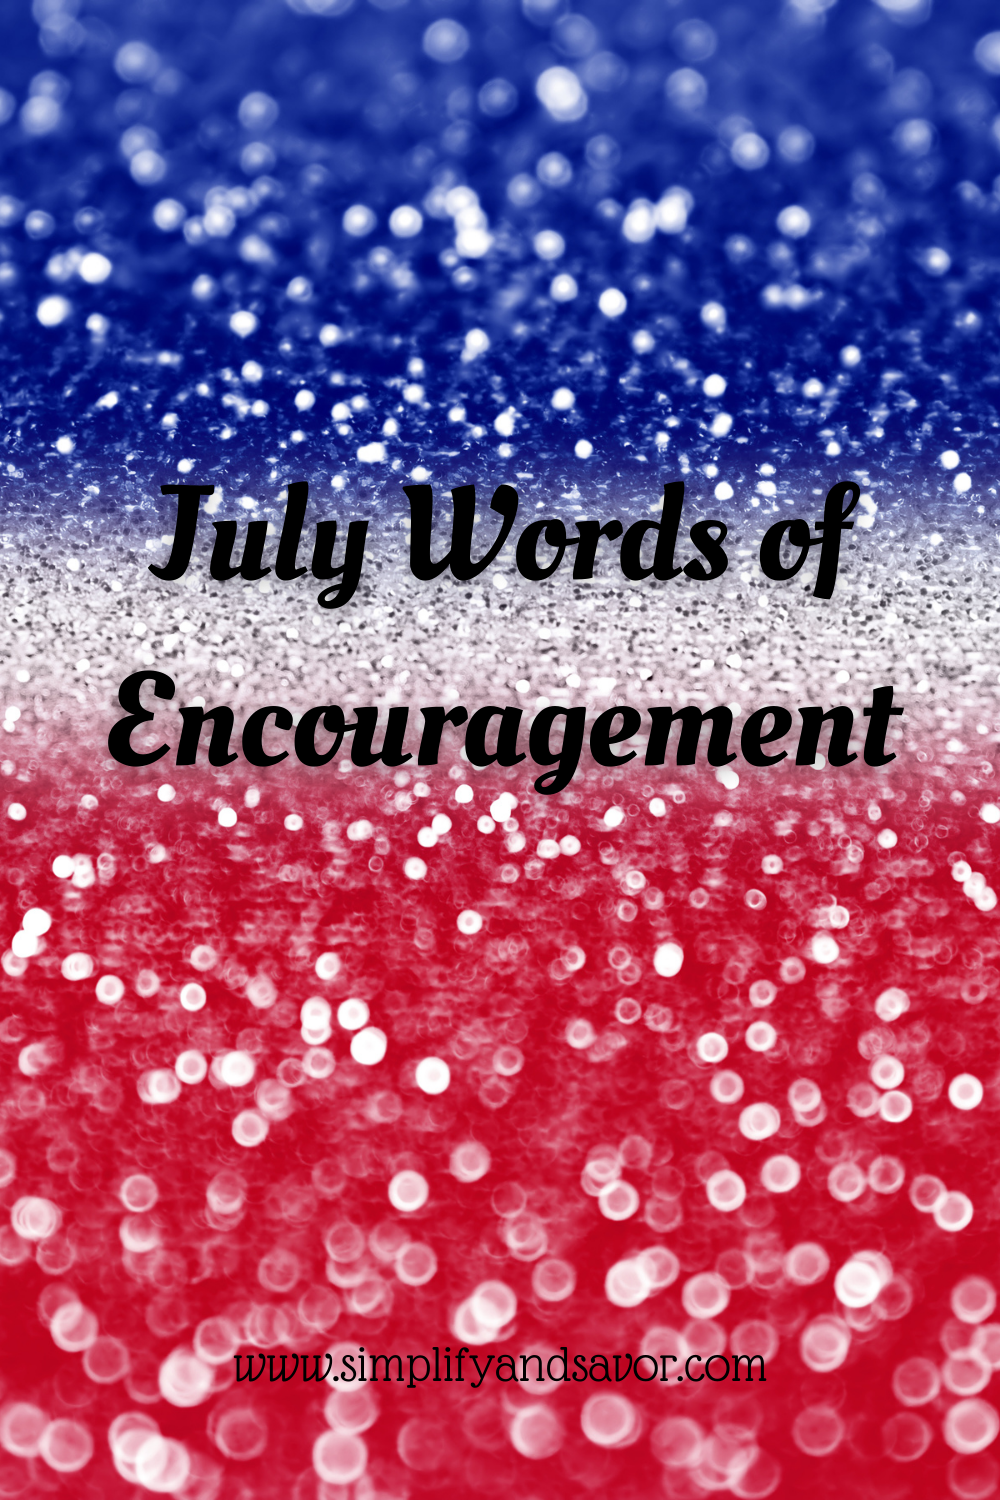 Celebrating with Red, White, and Blue, with the statement July Words of Encouragement